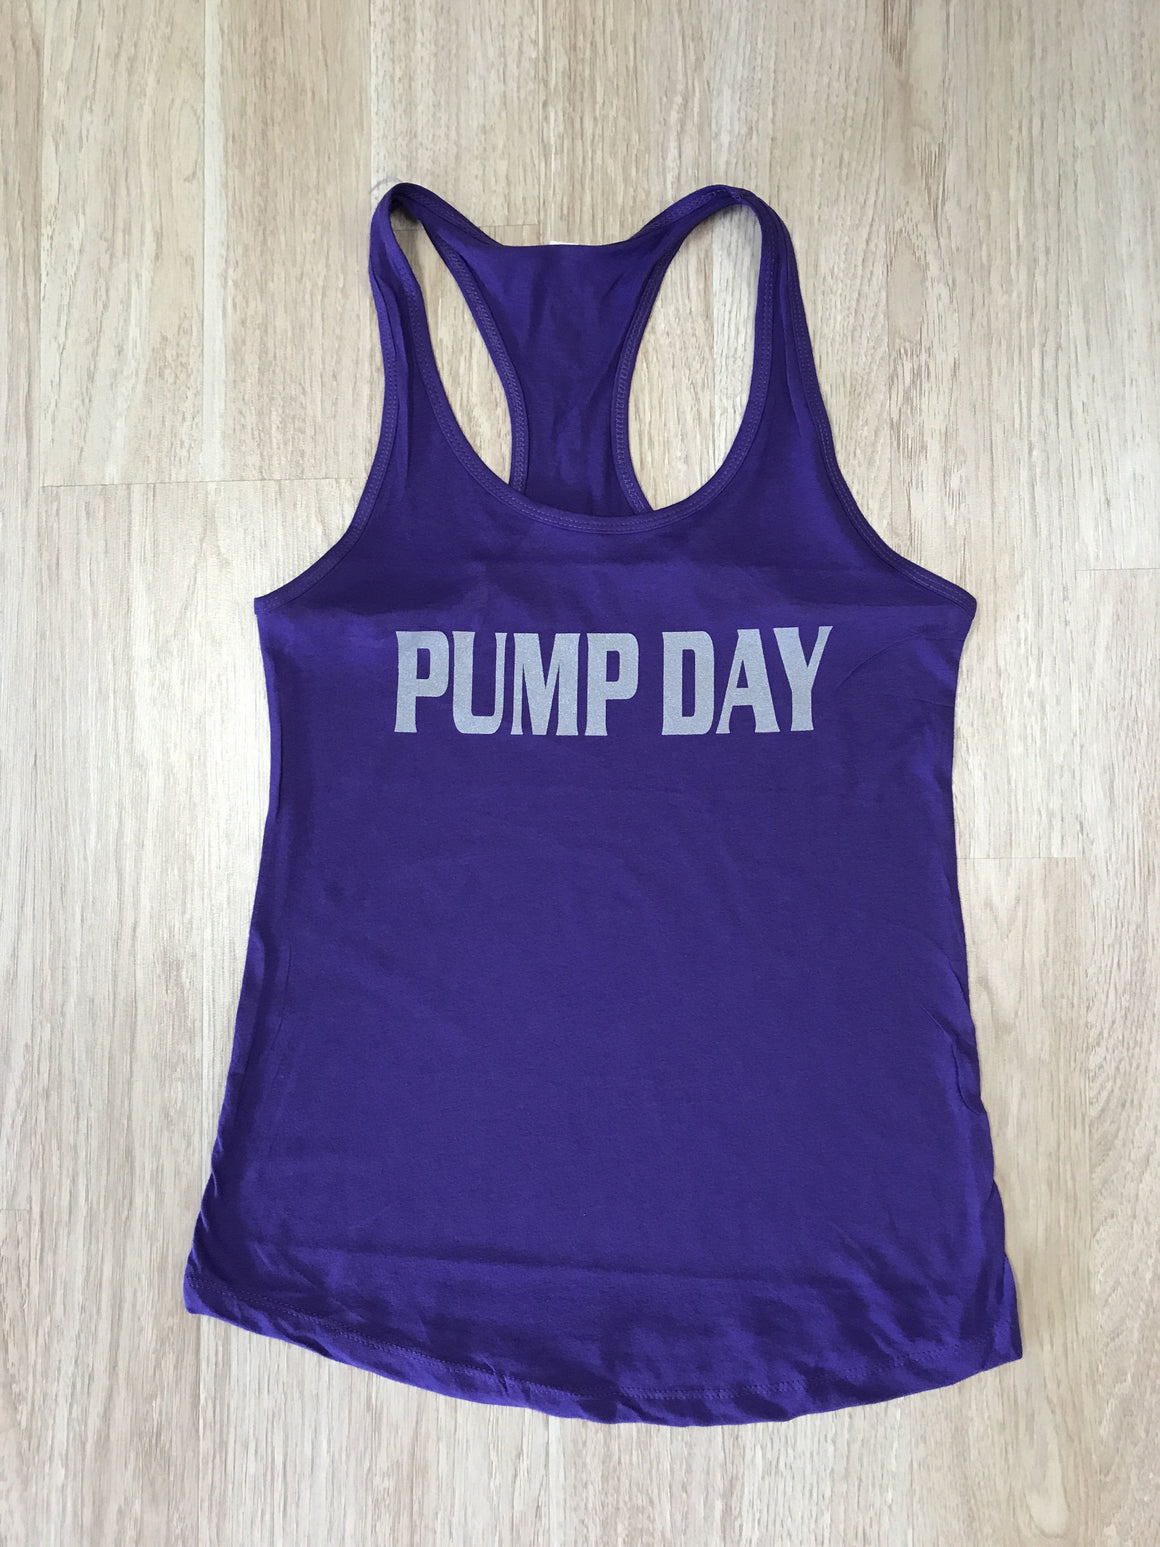 Pump Day Women's Workout Racerback Tank- The Sox Box